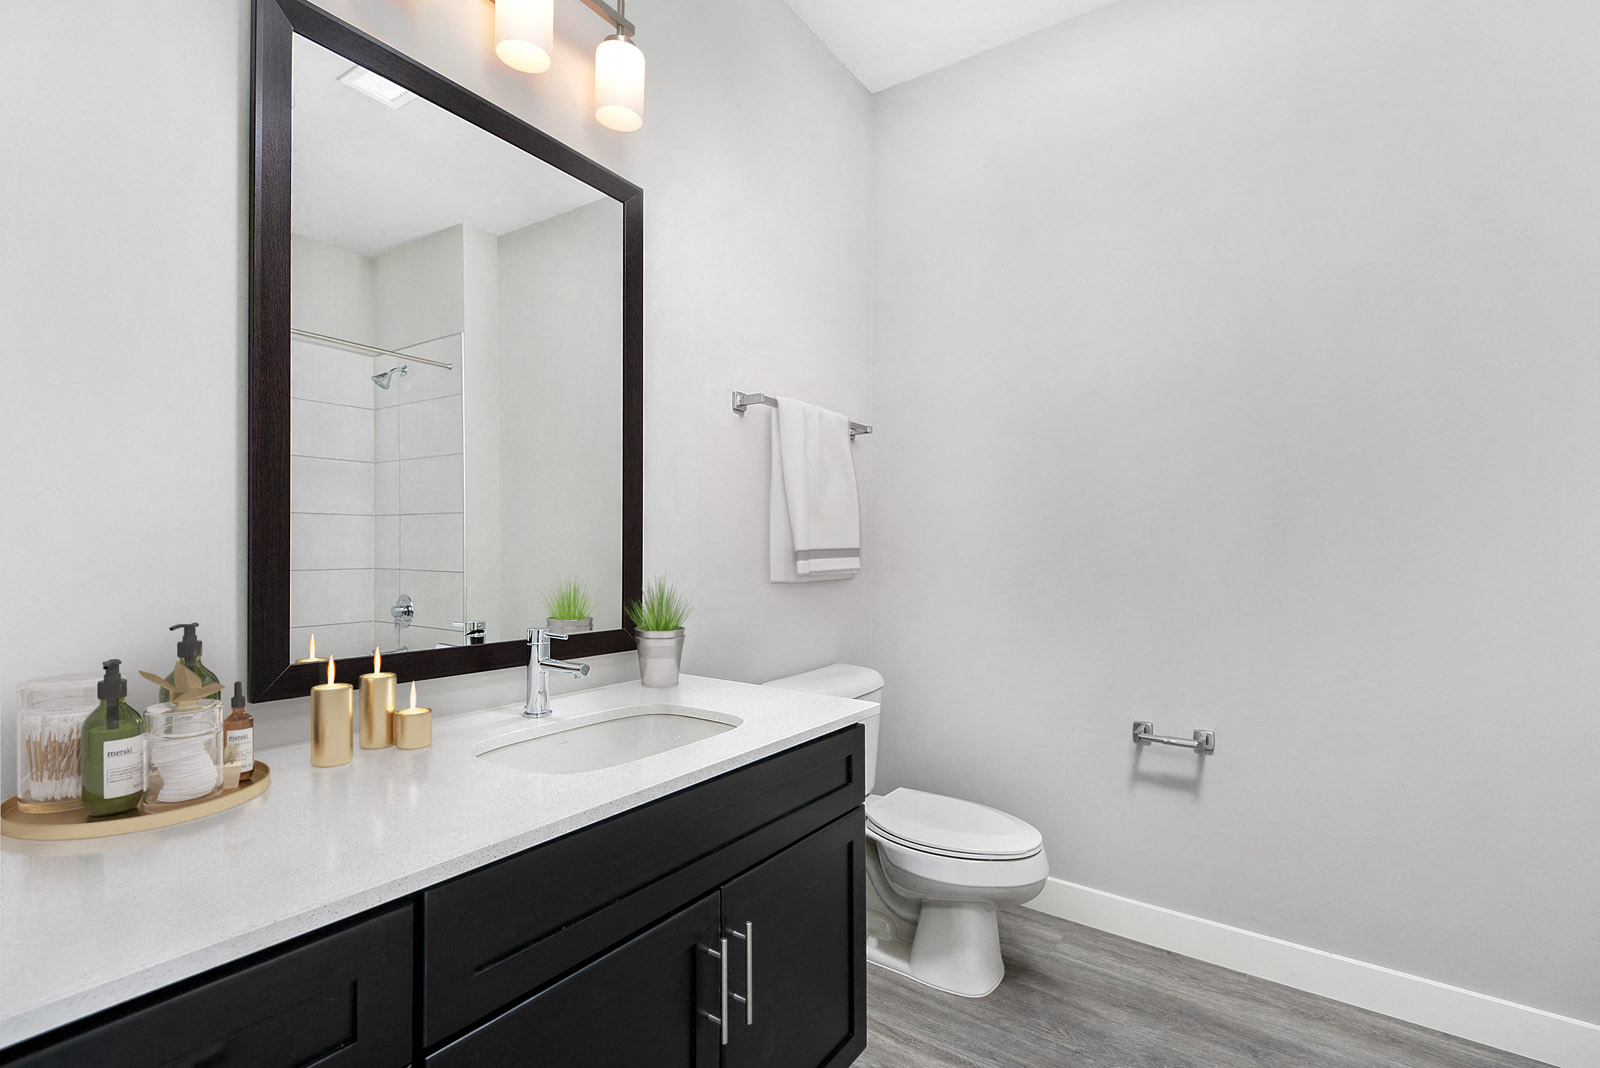 Bathroom vanity with dark cabinets, framed mirror, and tub/shower combo